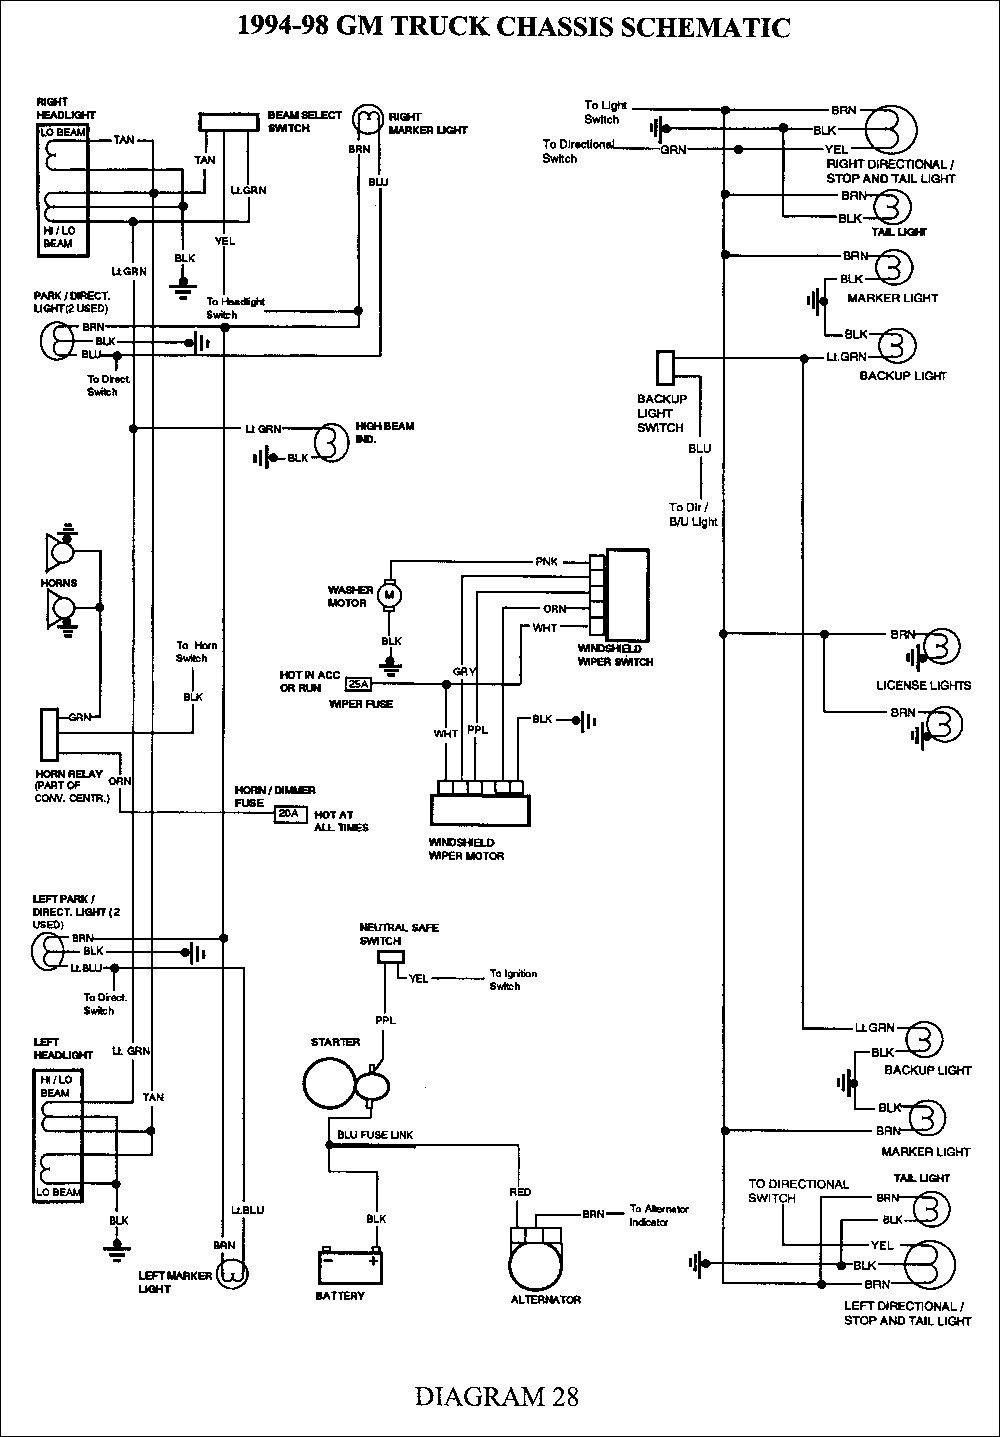 hight resolution of 2001 s10 4x4 wiring diagram wiring diagram page 1999 s10 wiring diagram chevy s10 4wd wiring